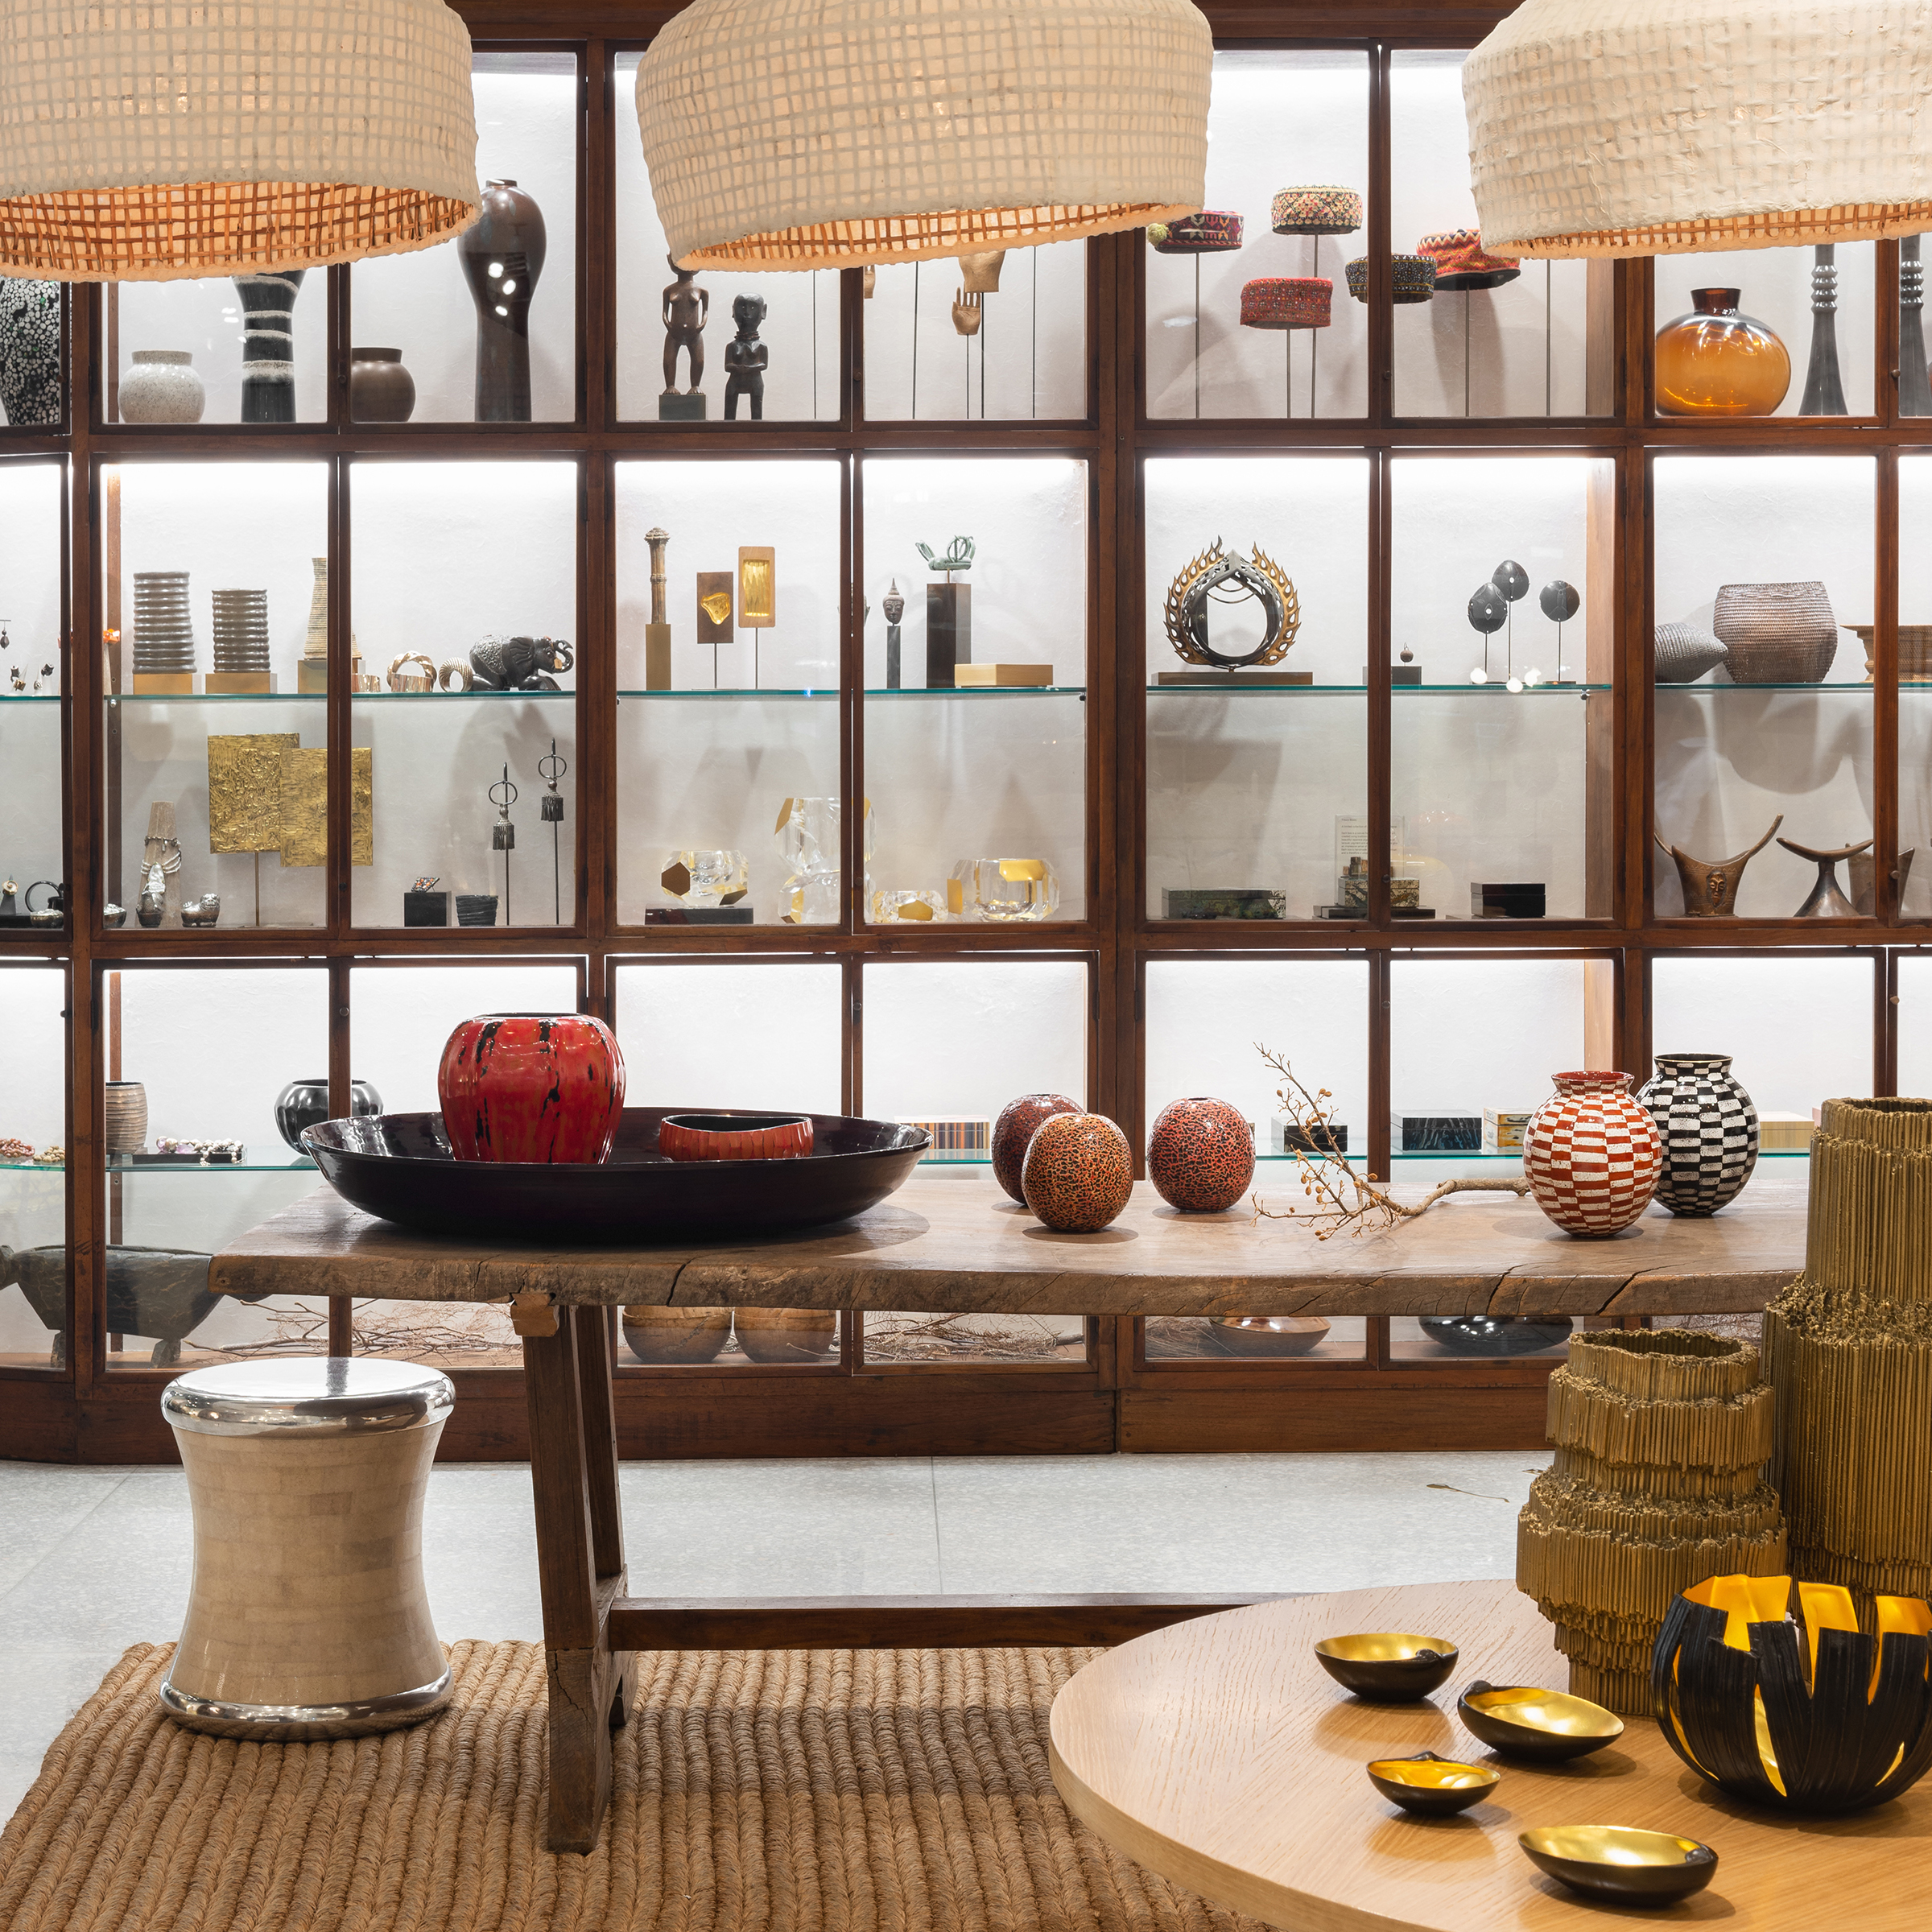 Alexander Lamont flagship shop is a quiet and sophisticated space where we show our collections of lighting, object, furniture and materials.